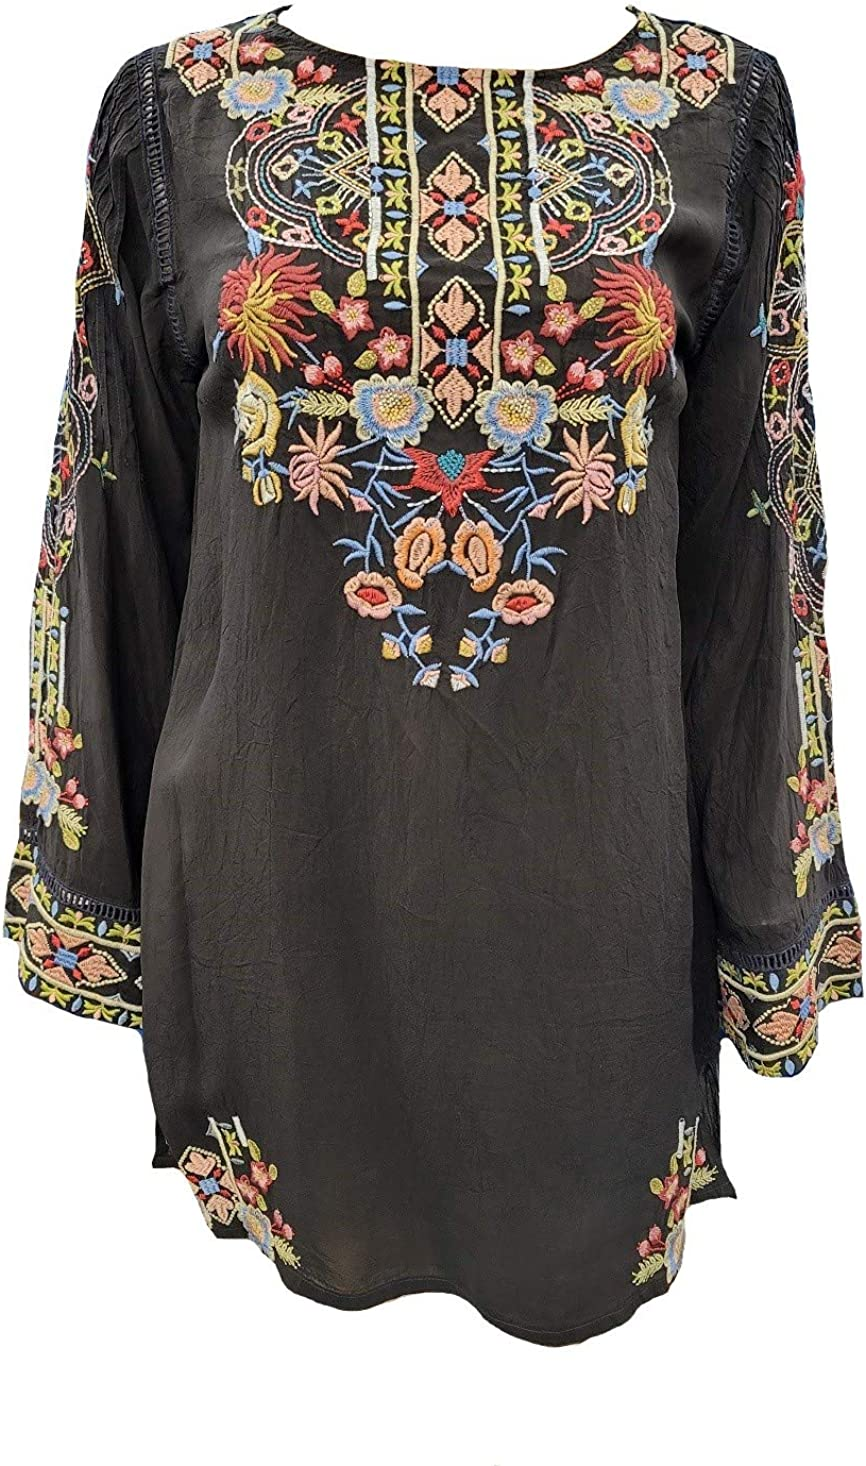 Johnny Was Sypress Blouse - C18820-D